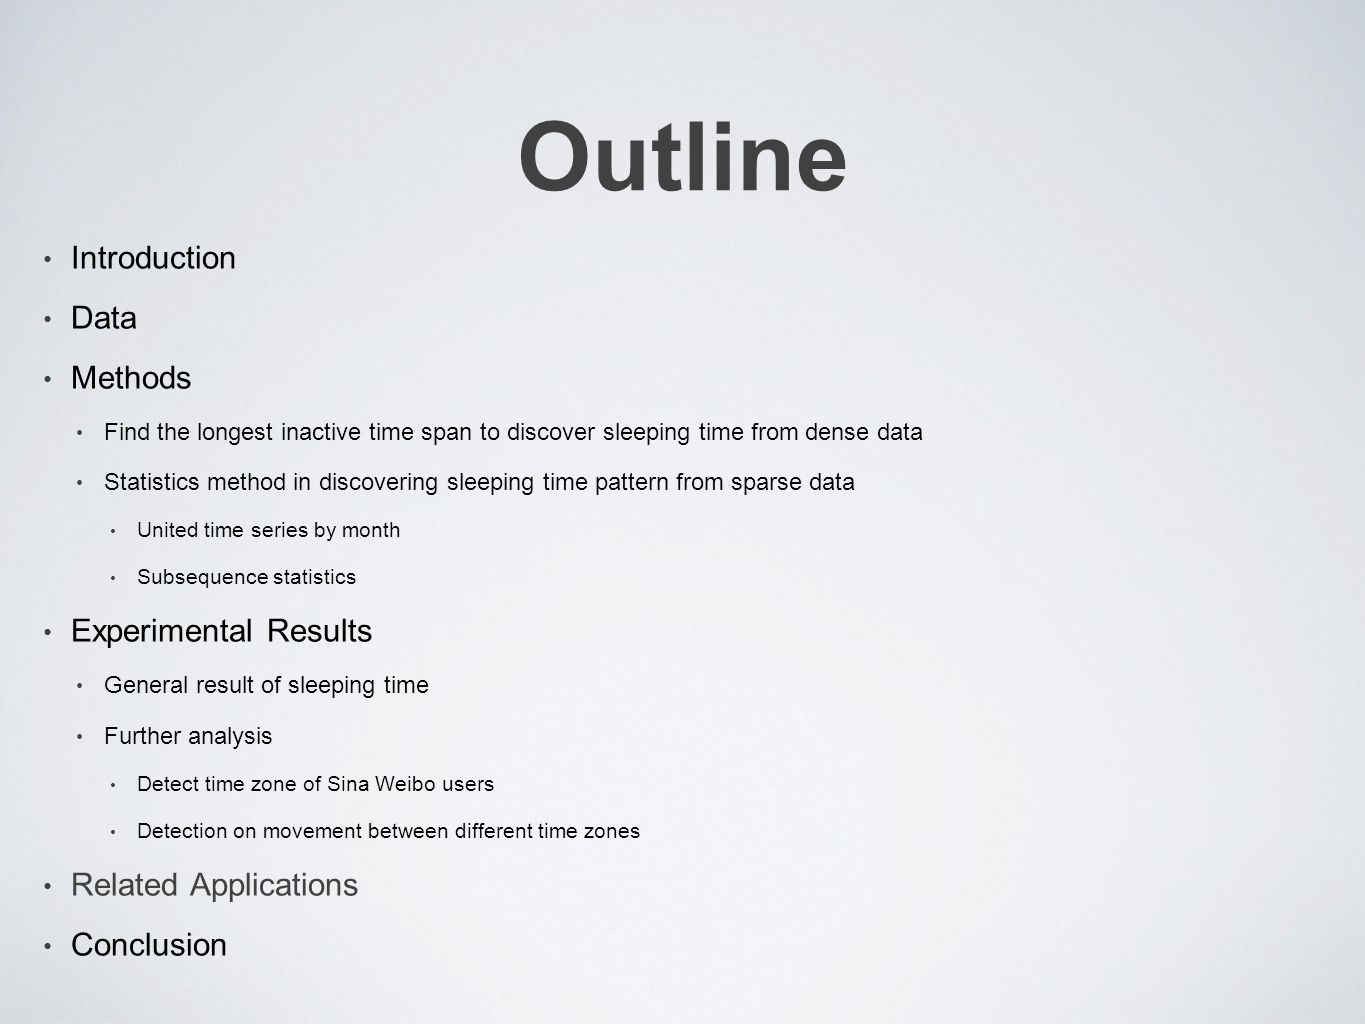 Outline Introduction Data Methods Find the longest inactive time span to discover sleeping time from dense data Statistics method in discovering sleeping time pattern from sparse data United time series by month Subsequence statistics Experimental Results General result of sleeping time Further analysis Detect time zone of Sina Weibo users Detection on movement between different time zones Related Applications Conclusion